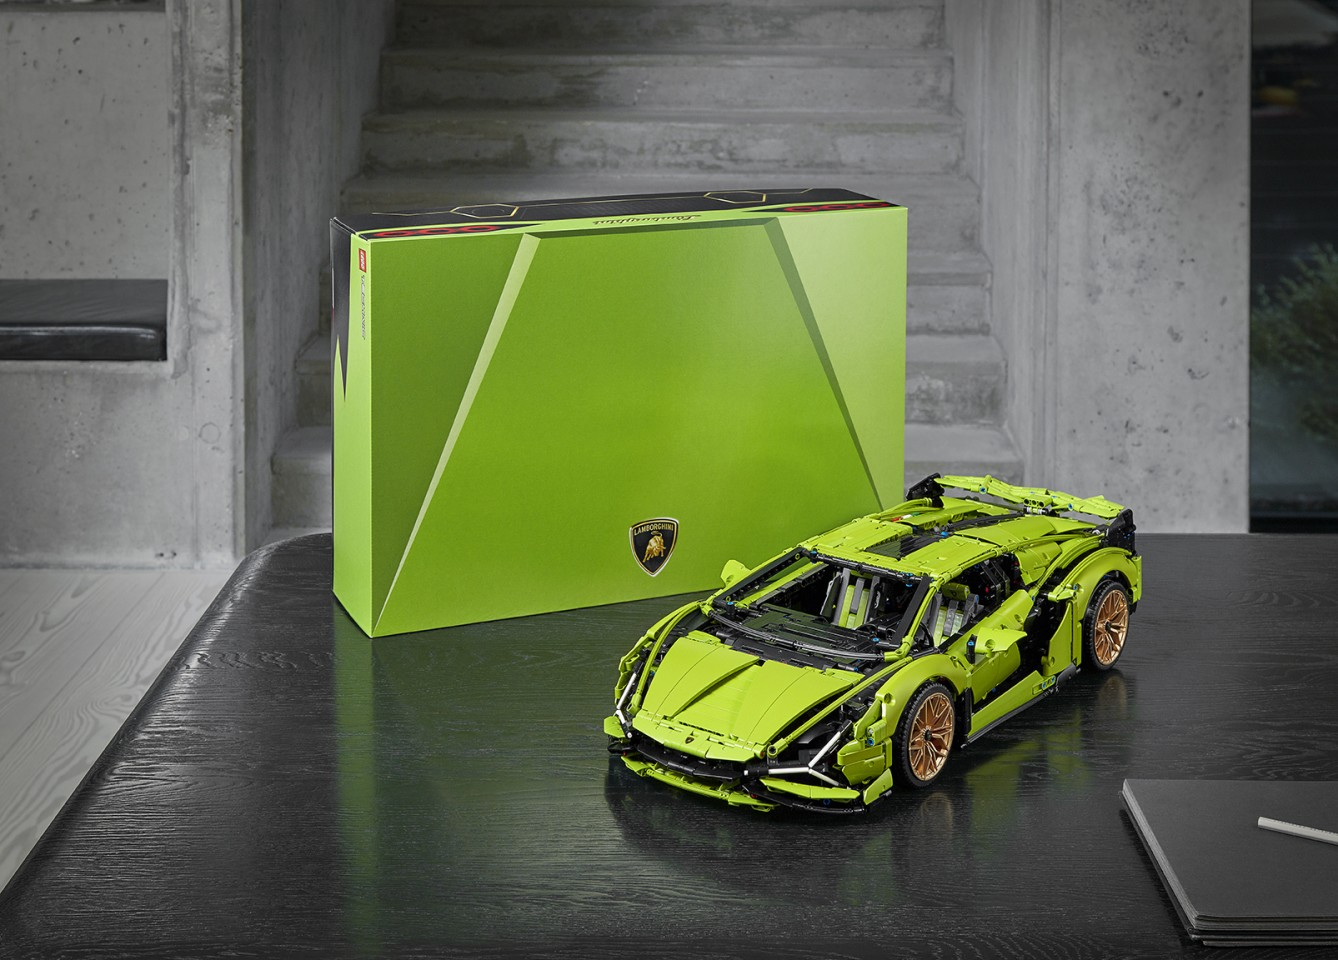 The Lego Sián FKP 37 comes in a unique box inspired by Lamborghini's lines